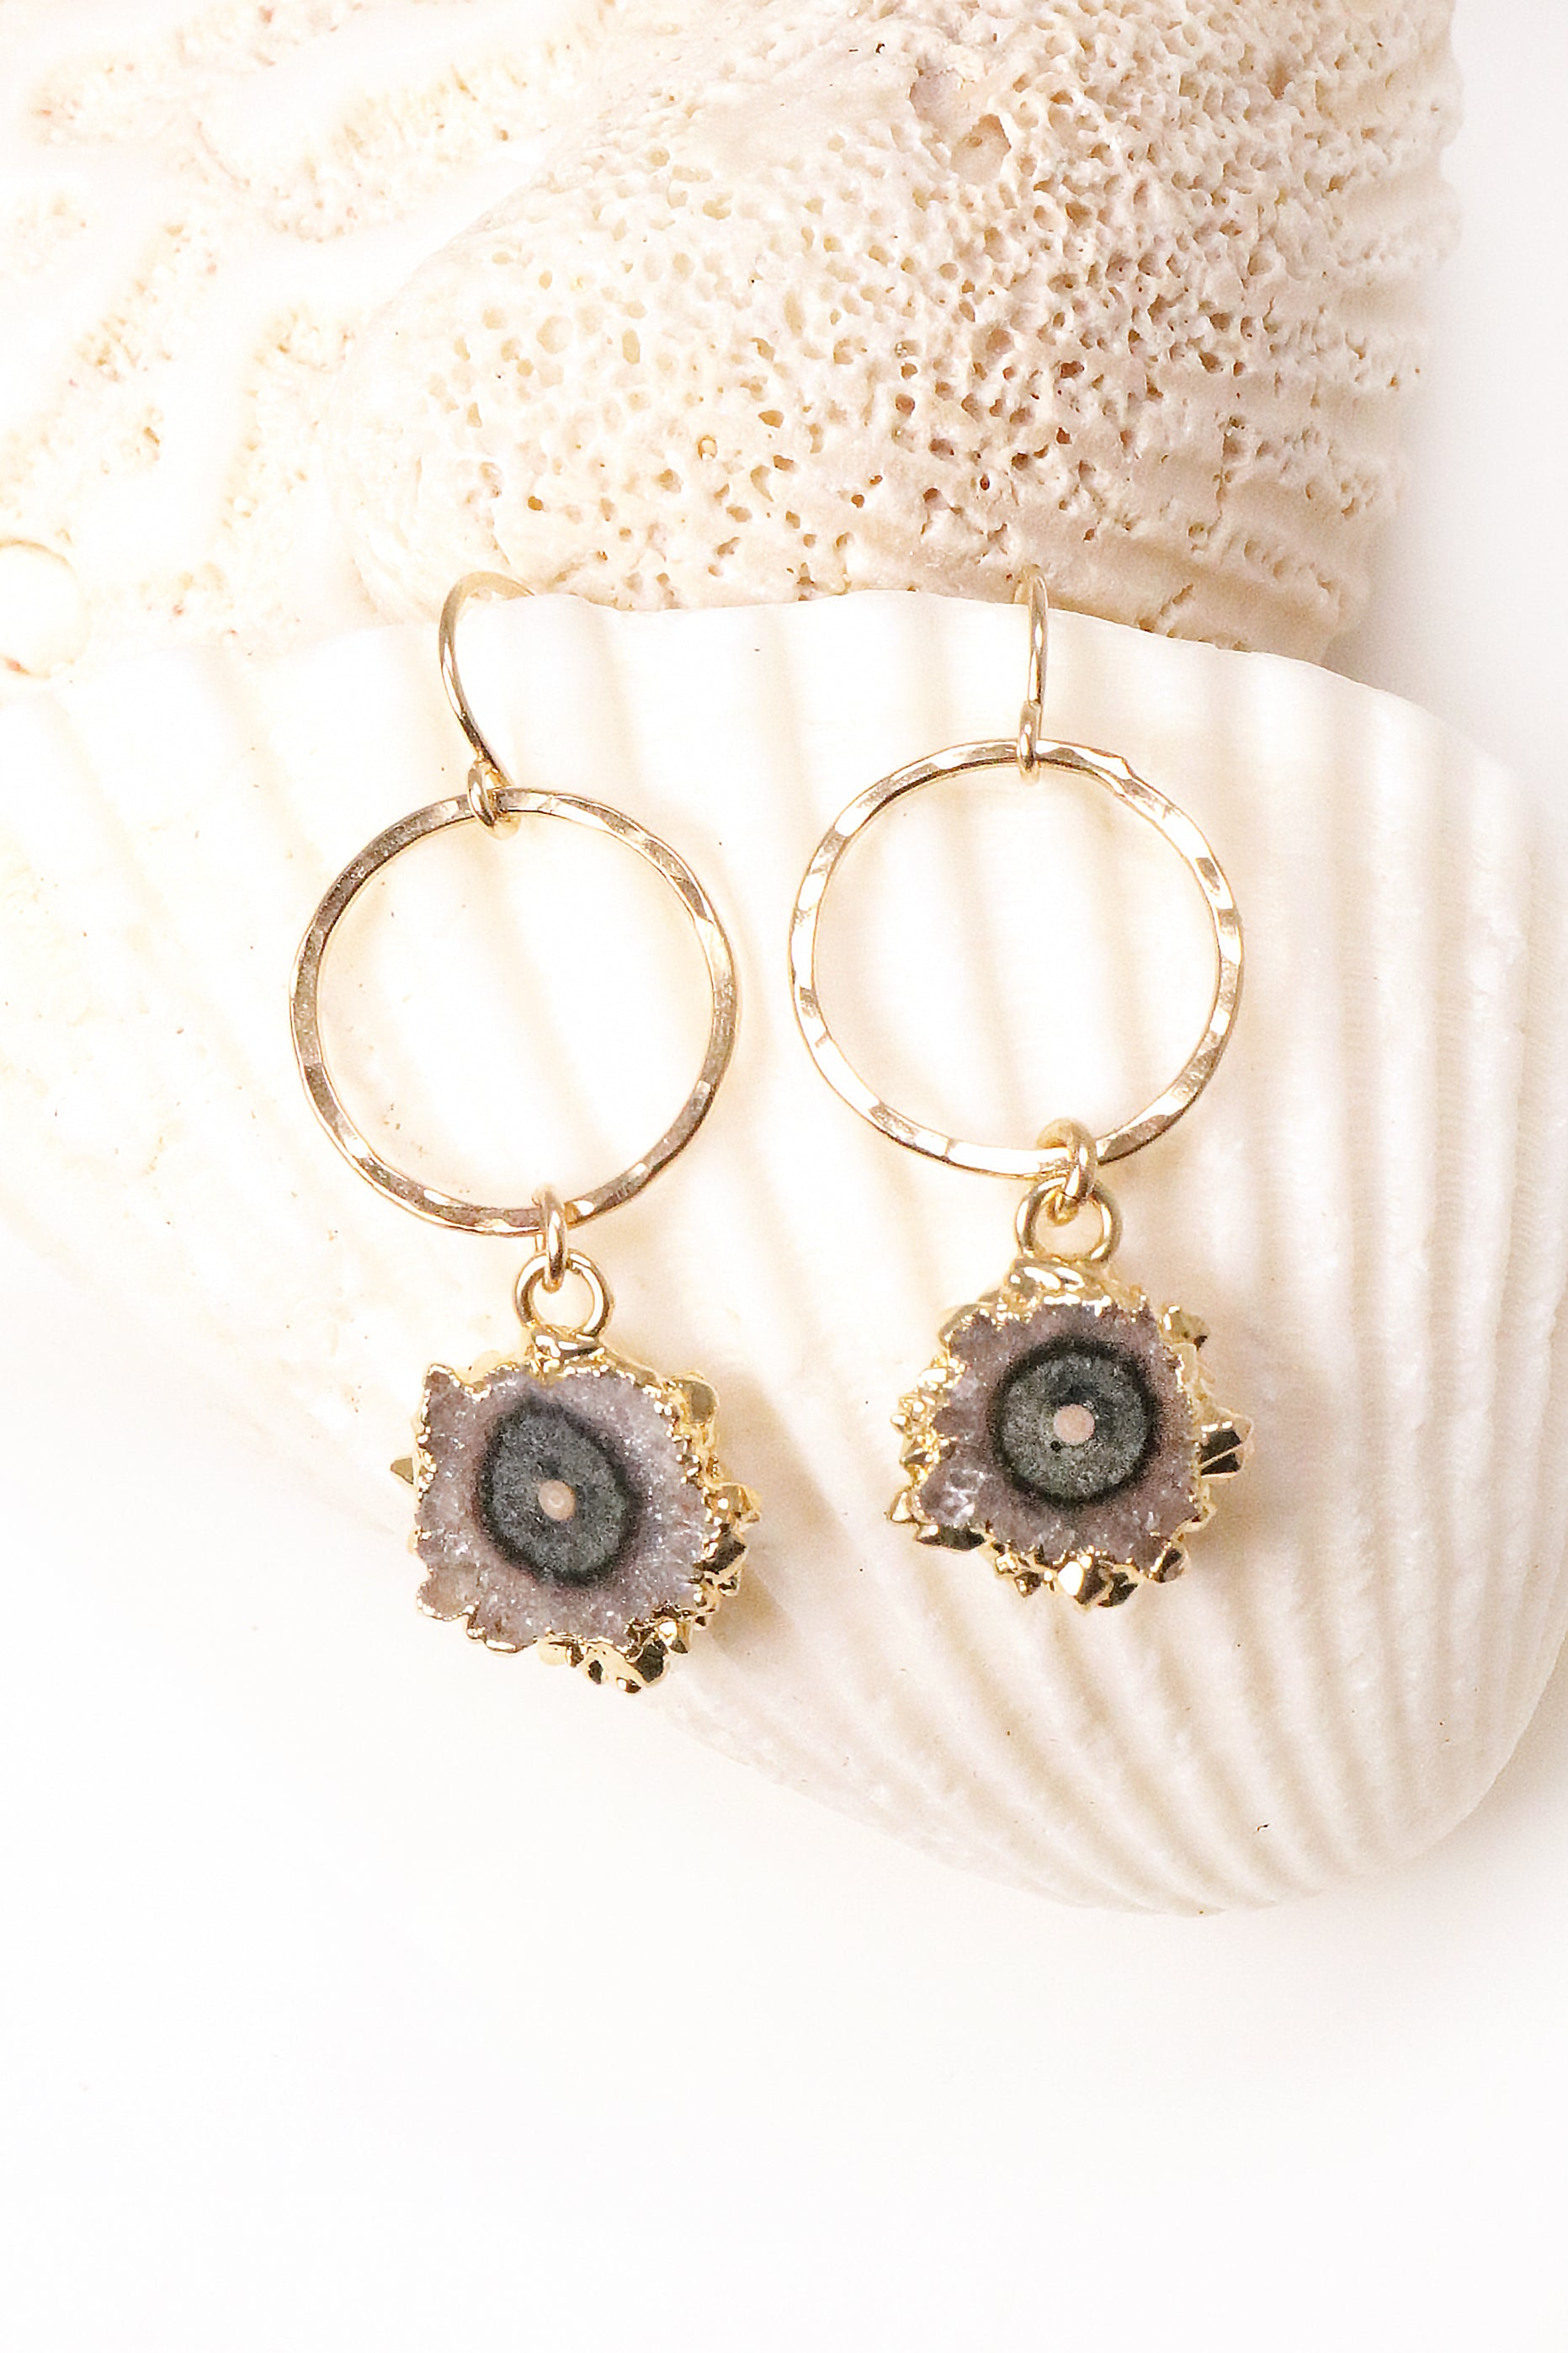 Petite Stalactite Hoop Earrings